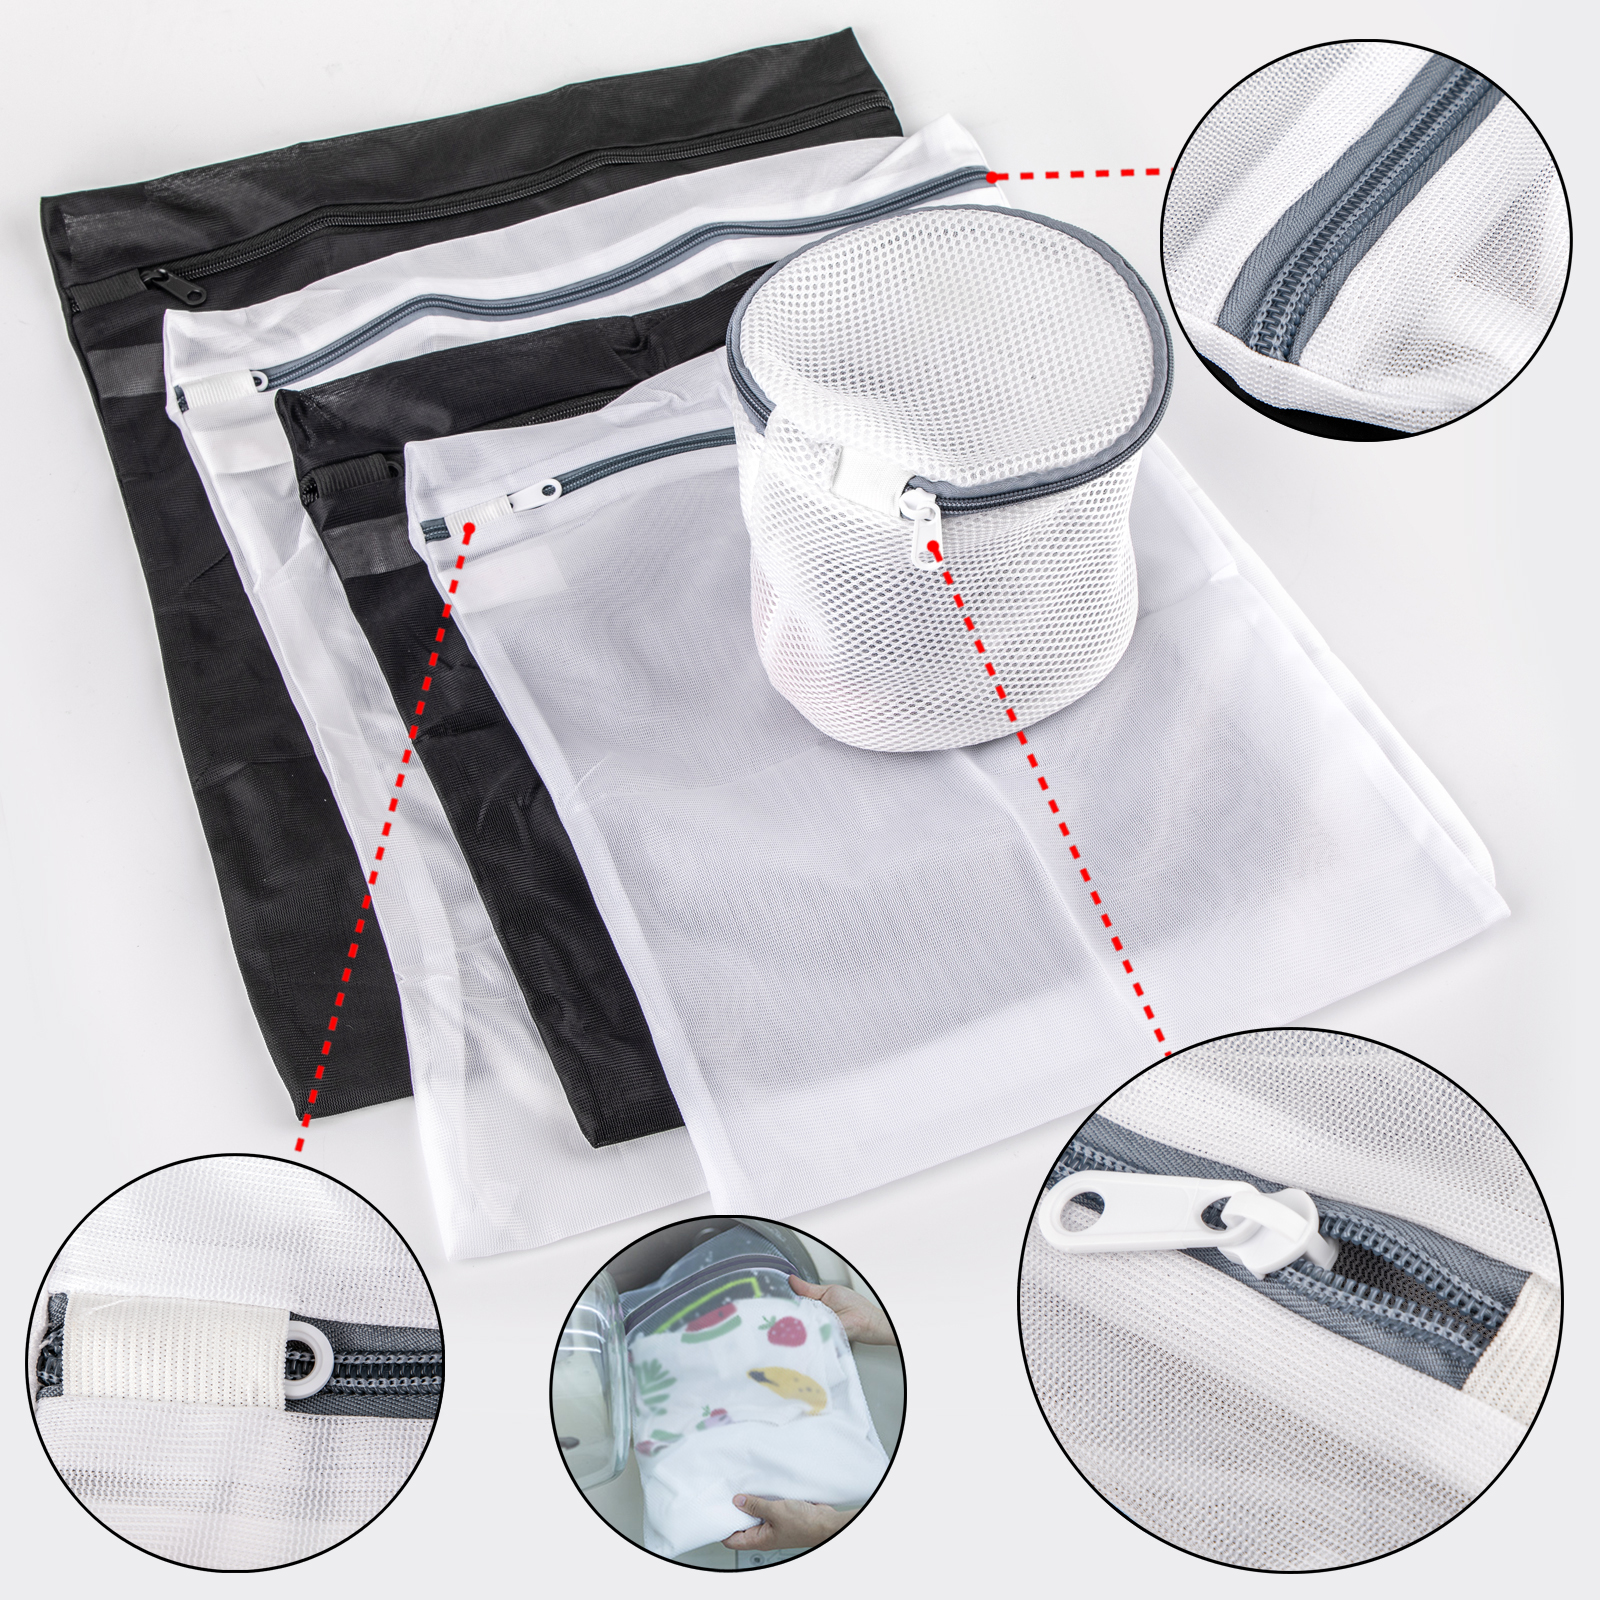 Areyourshop Zipped Laundry bags Set for bra lingerie dirty clothes shoe Black / White Travel Home Appliance